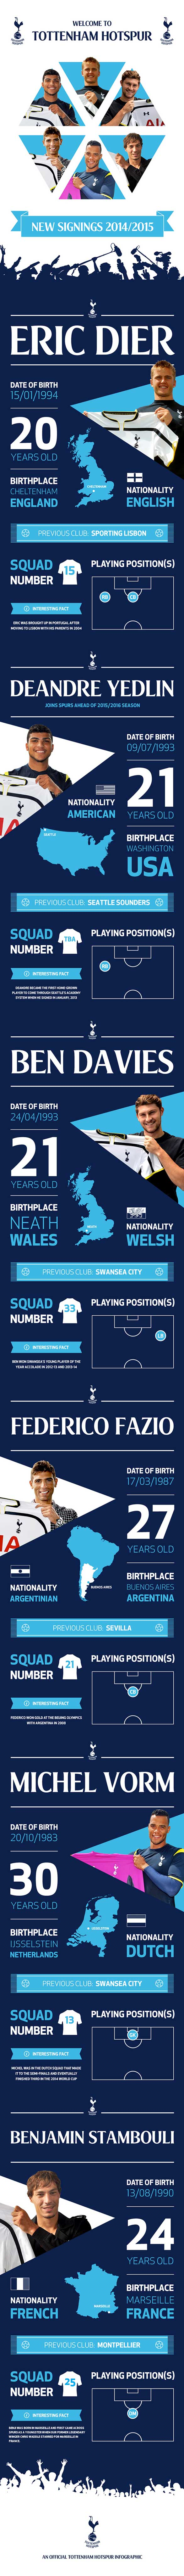 new_signings_infog